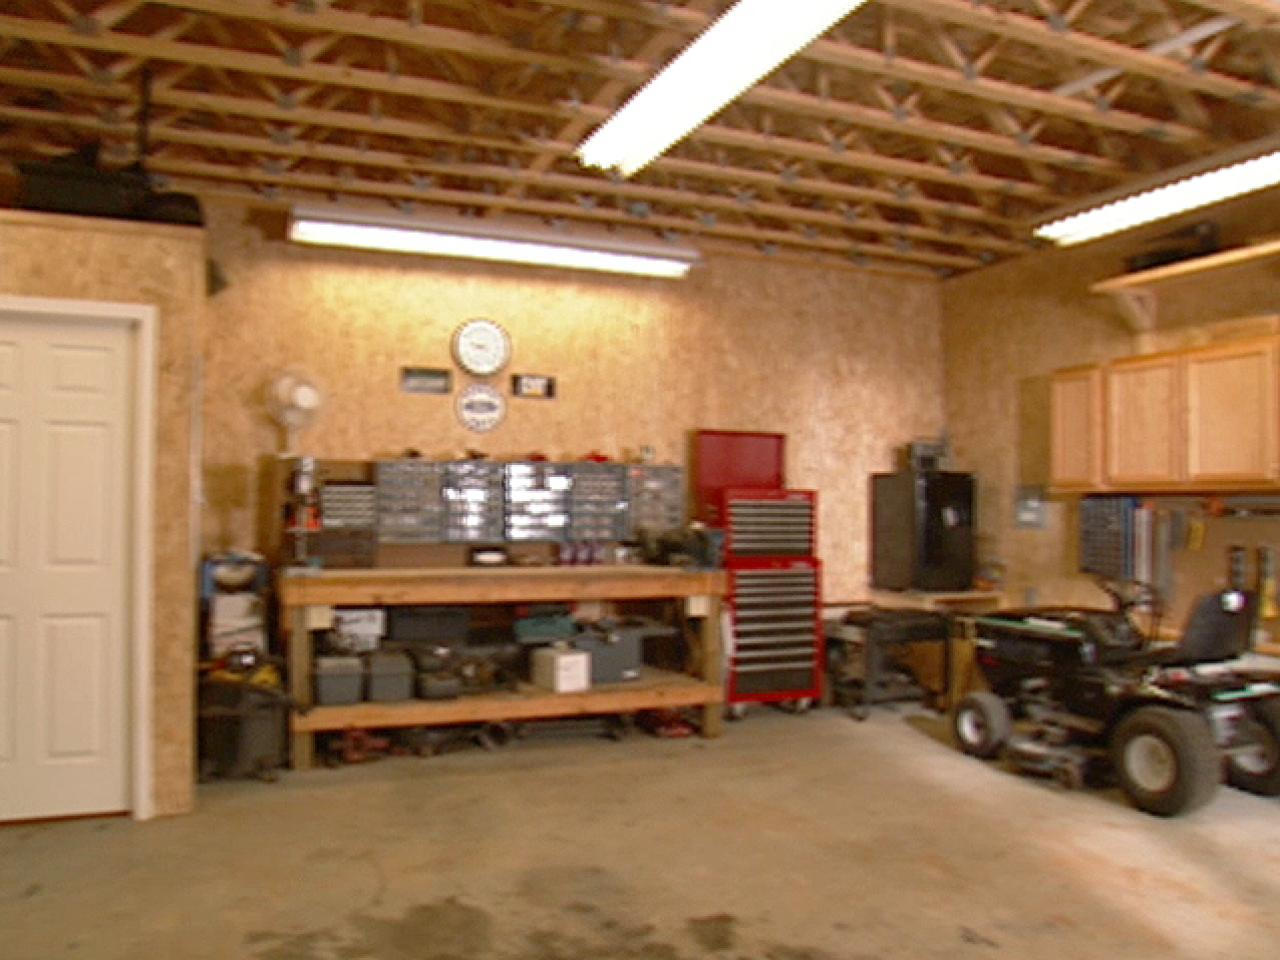 A Garage Is Most Common Workshop Location